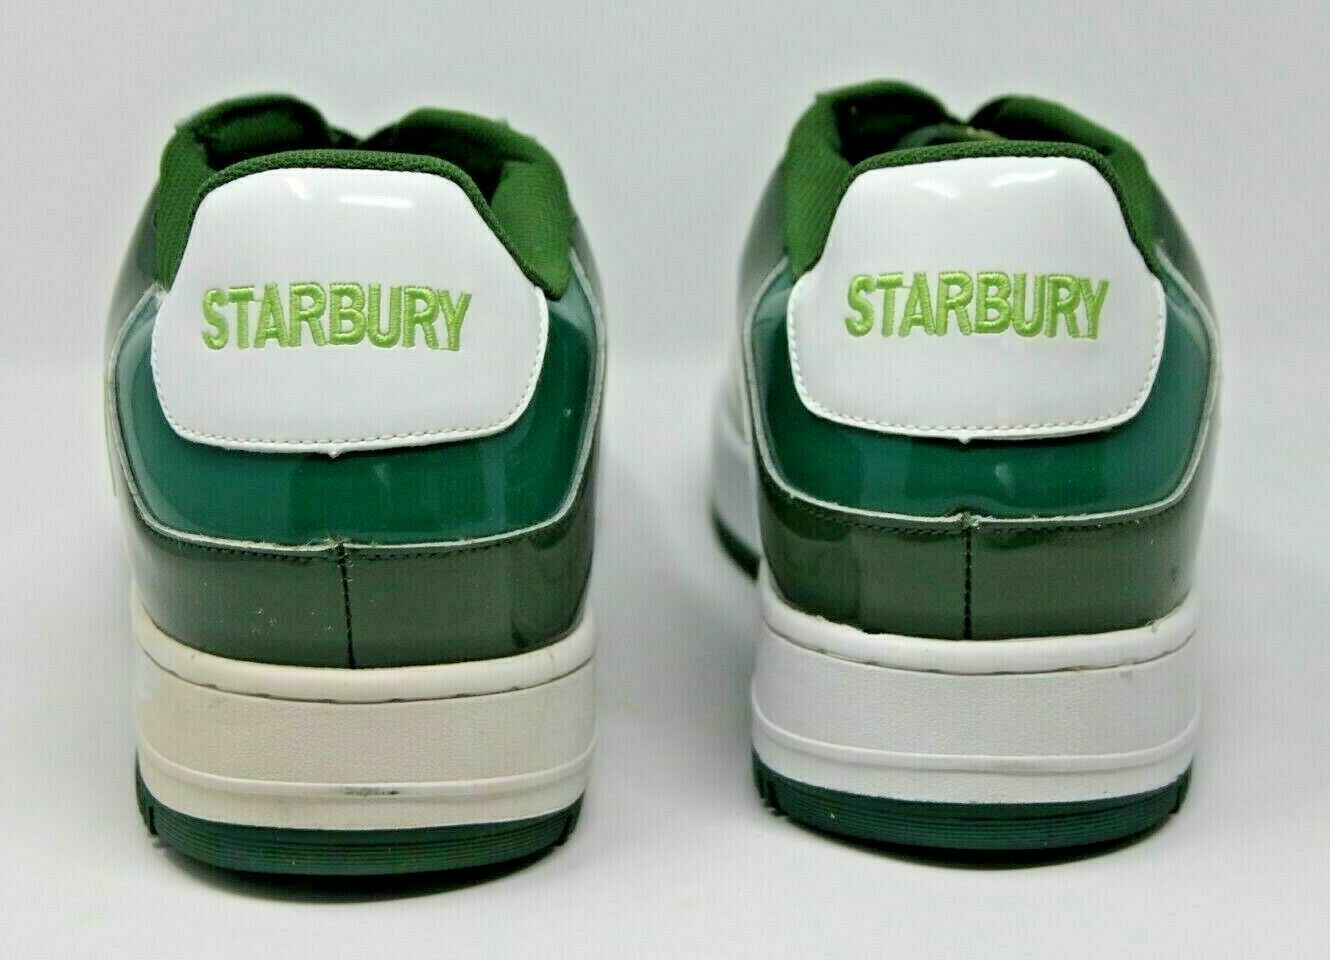 Starbury Size 15 Kelly Green Crossover Le By Stephon Marbury Basketball Shoes image 3